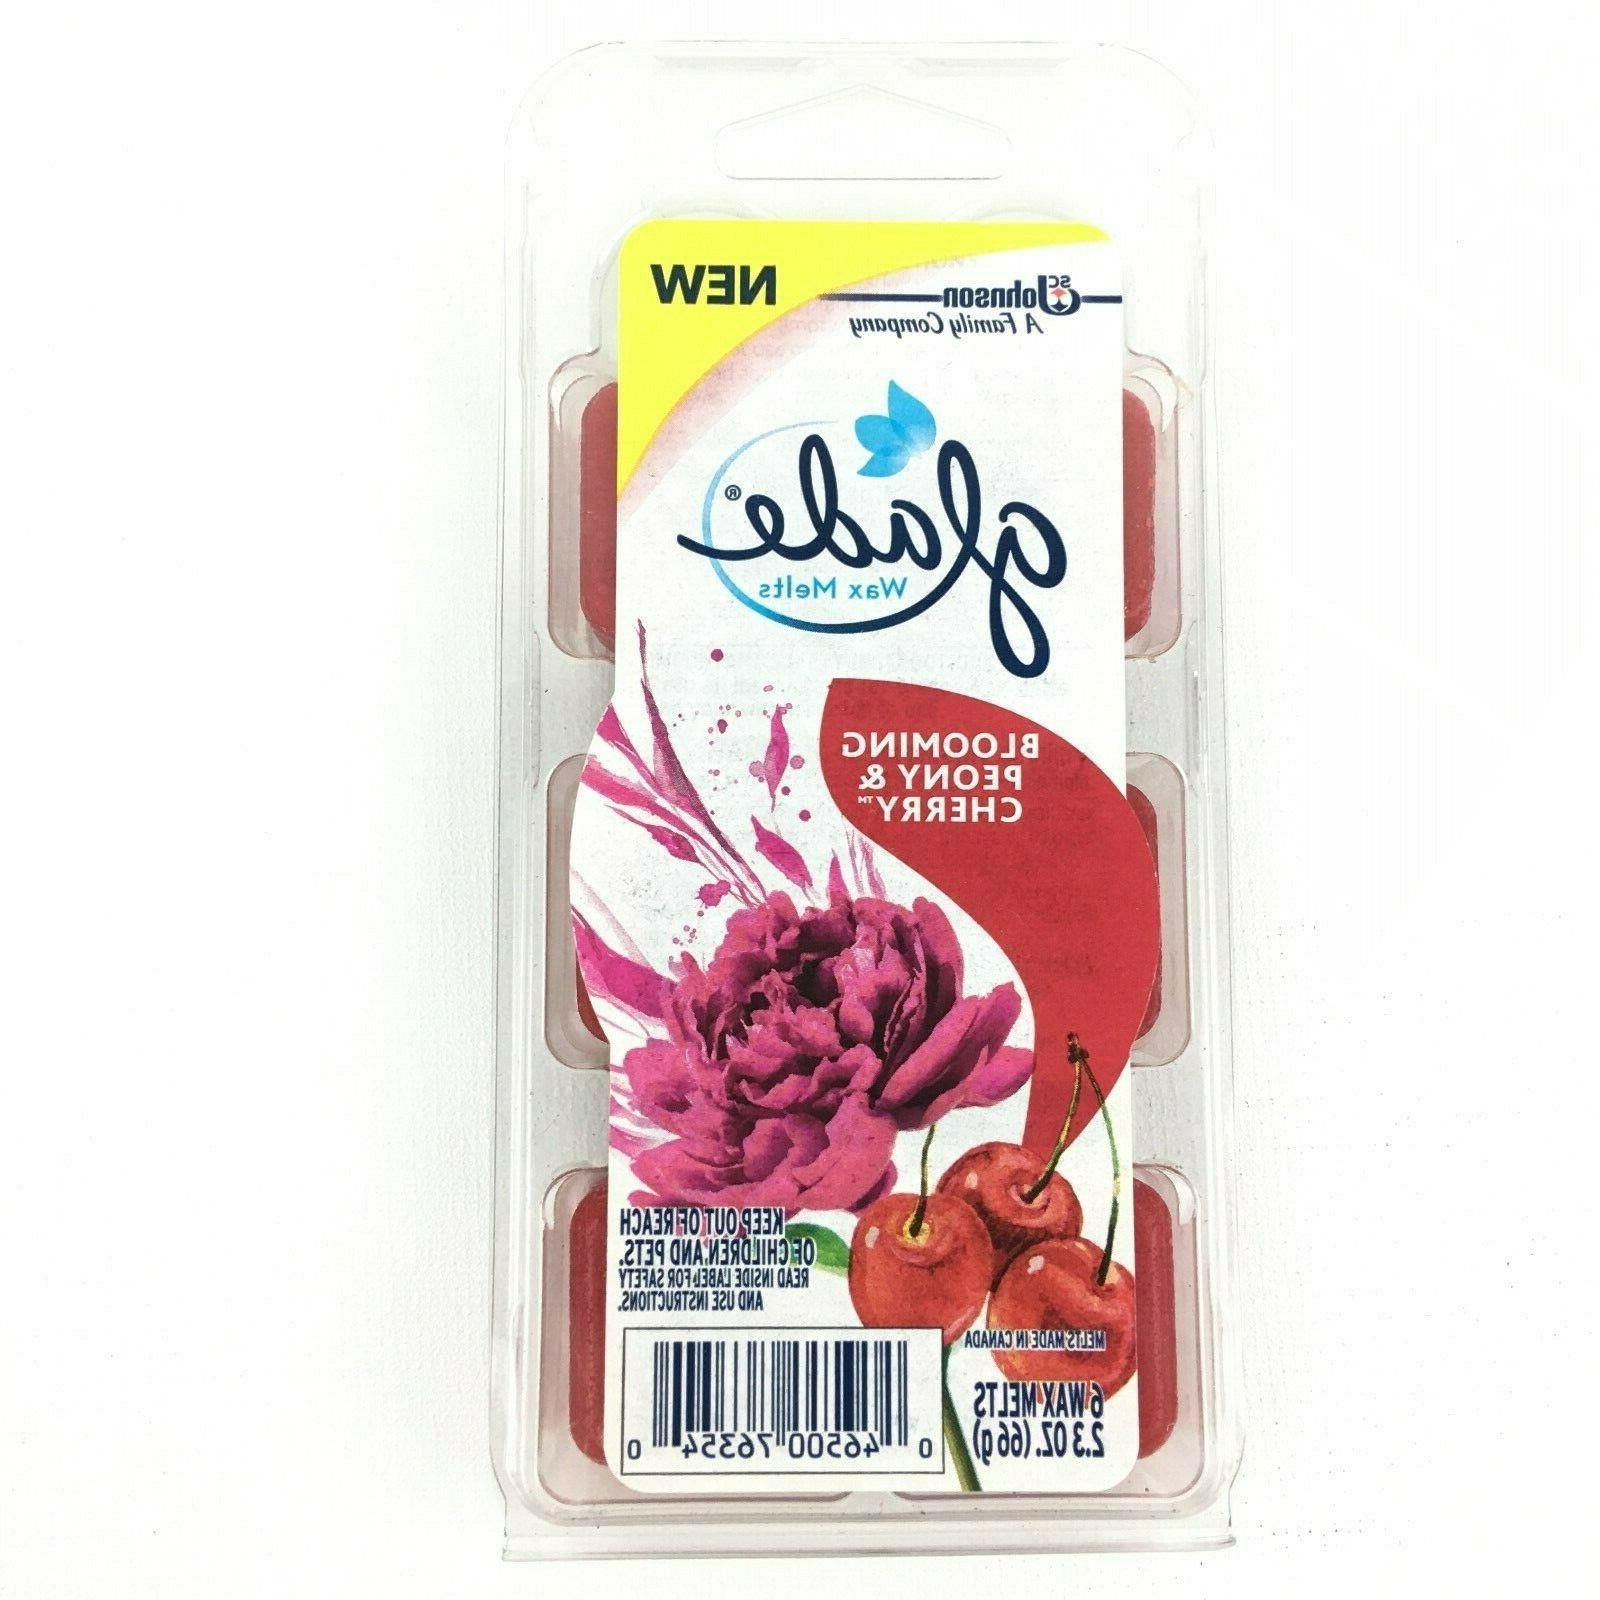 glade blooming peony cherry scented wax melts each